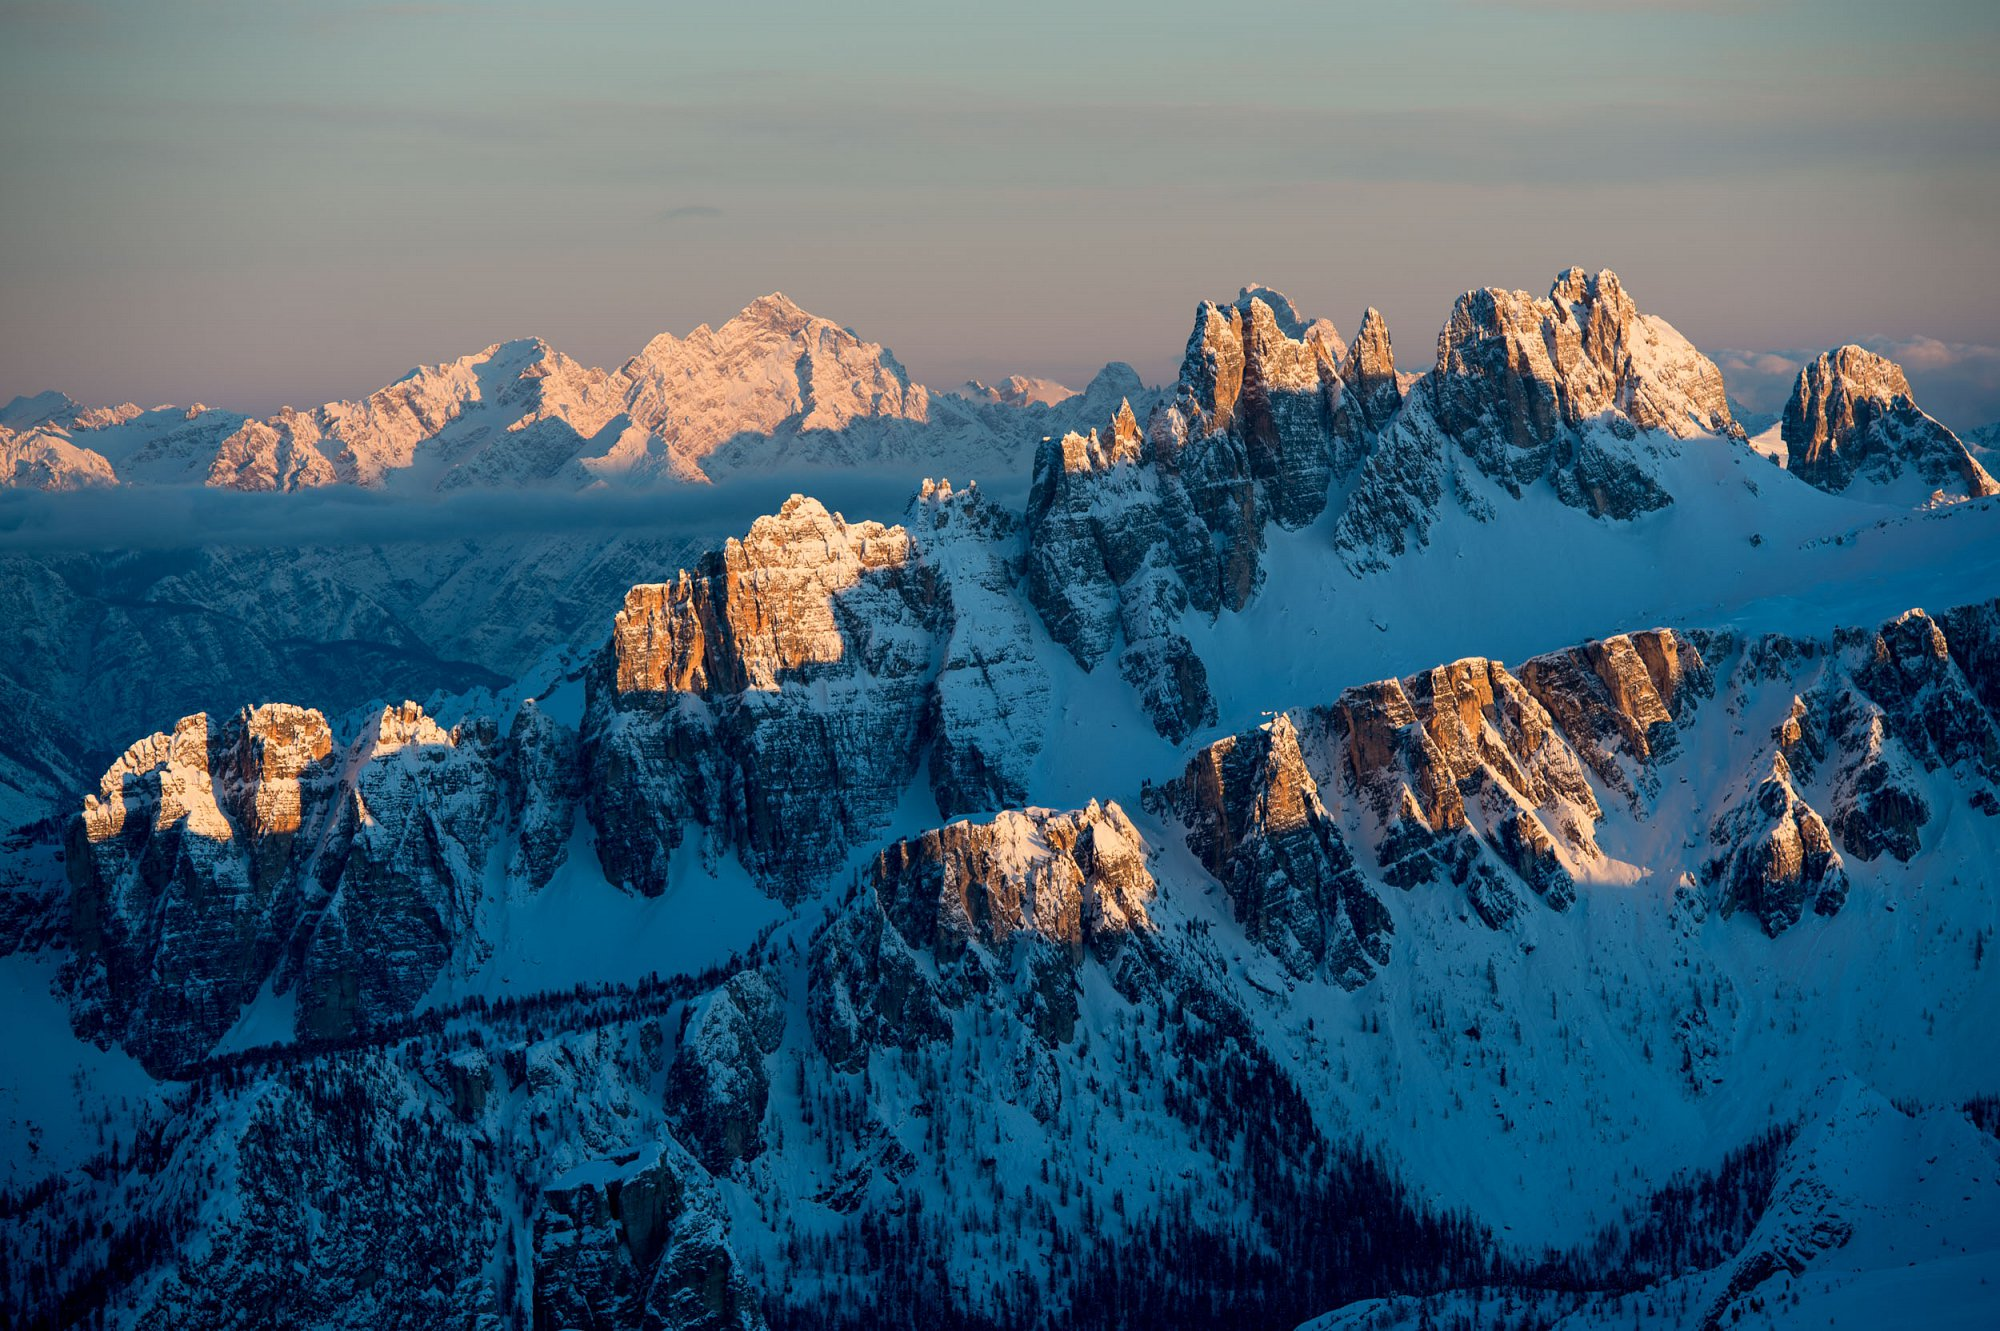 Cortina d'Ampezzo in Italy. Sunset from Rifugio Lagazuoi for Cortina Tourism.